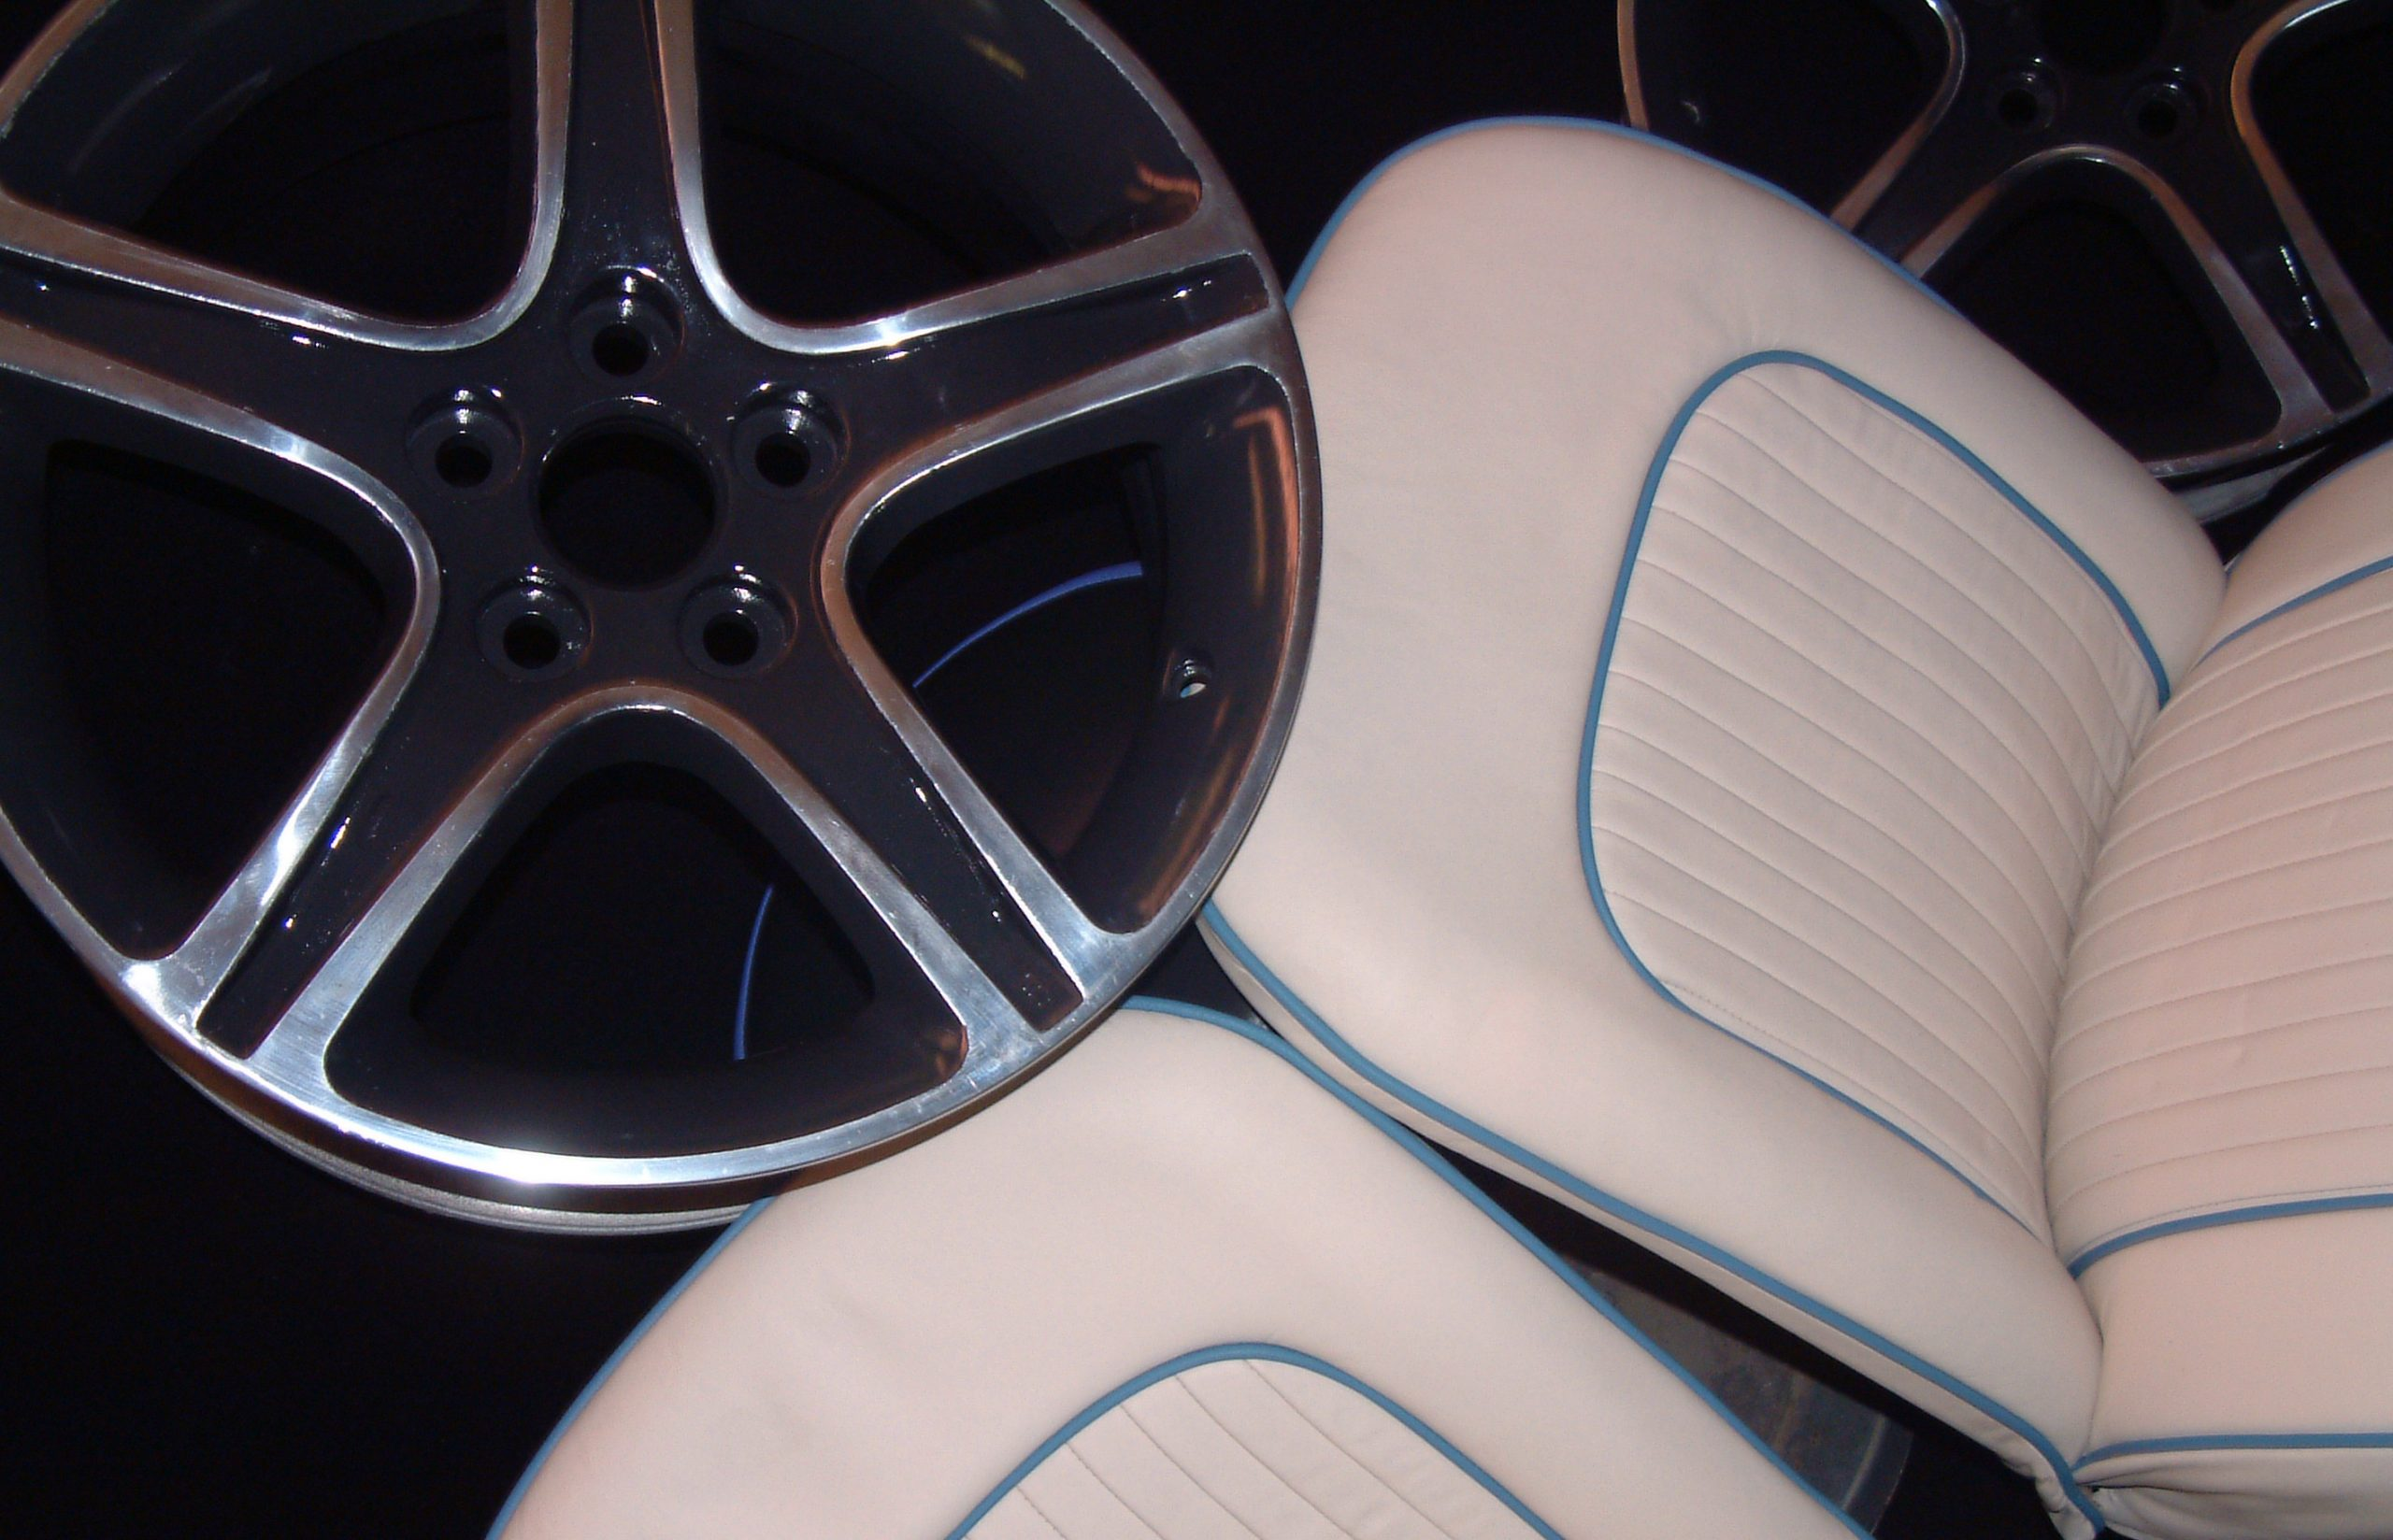 White+leather+and+blue+pipe+car+seat+upholstery